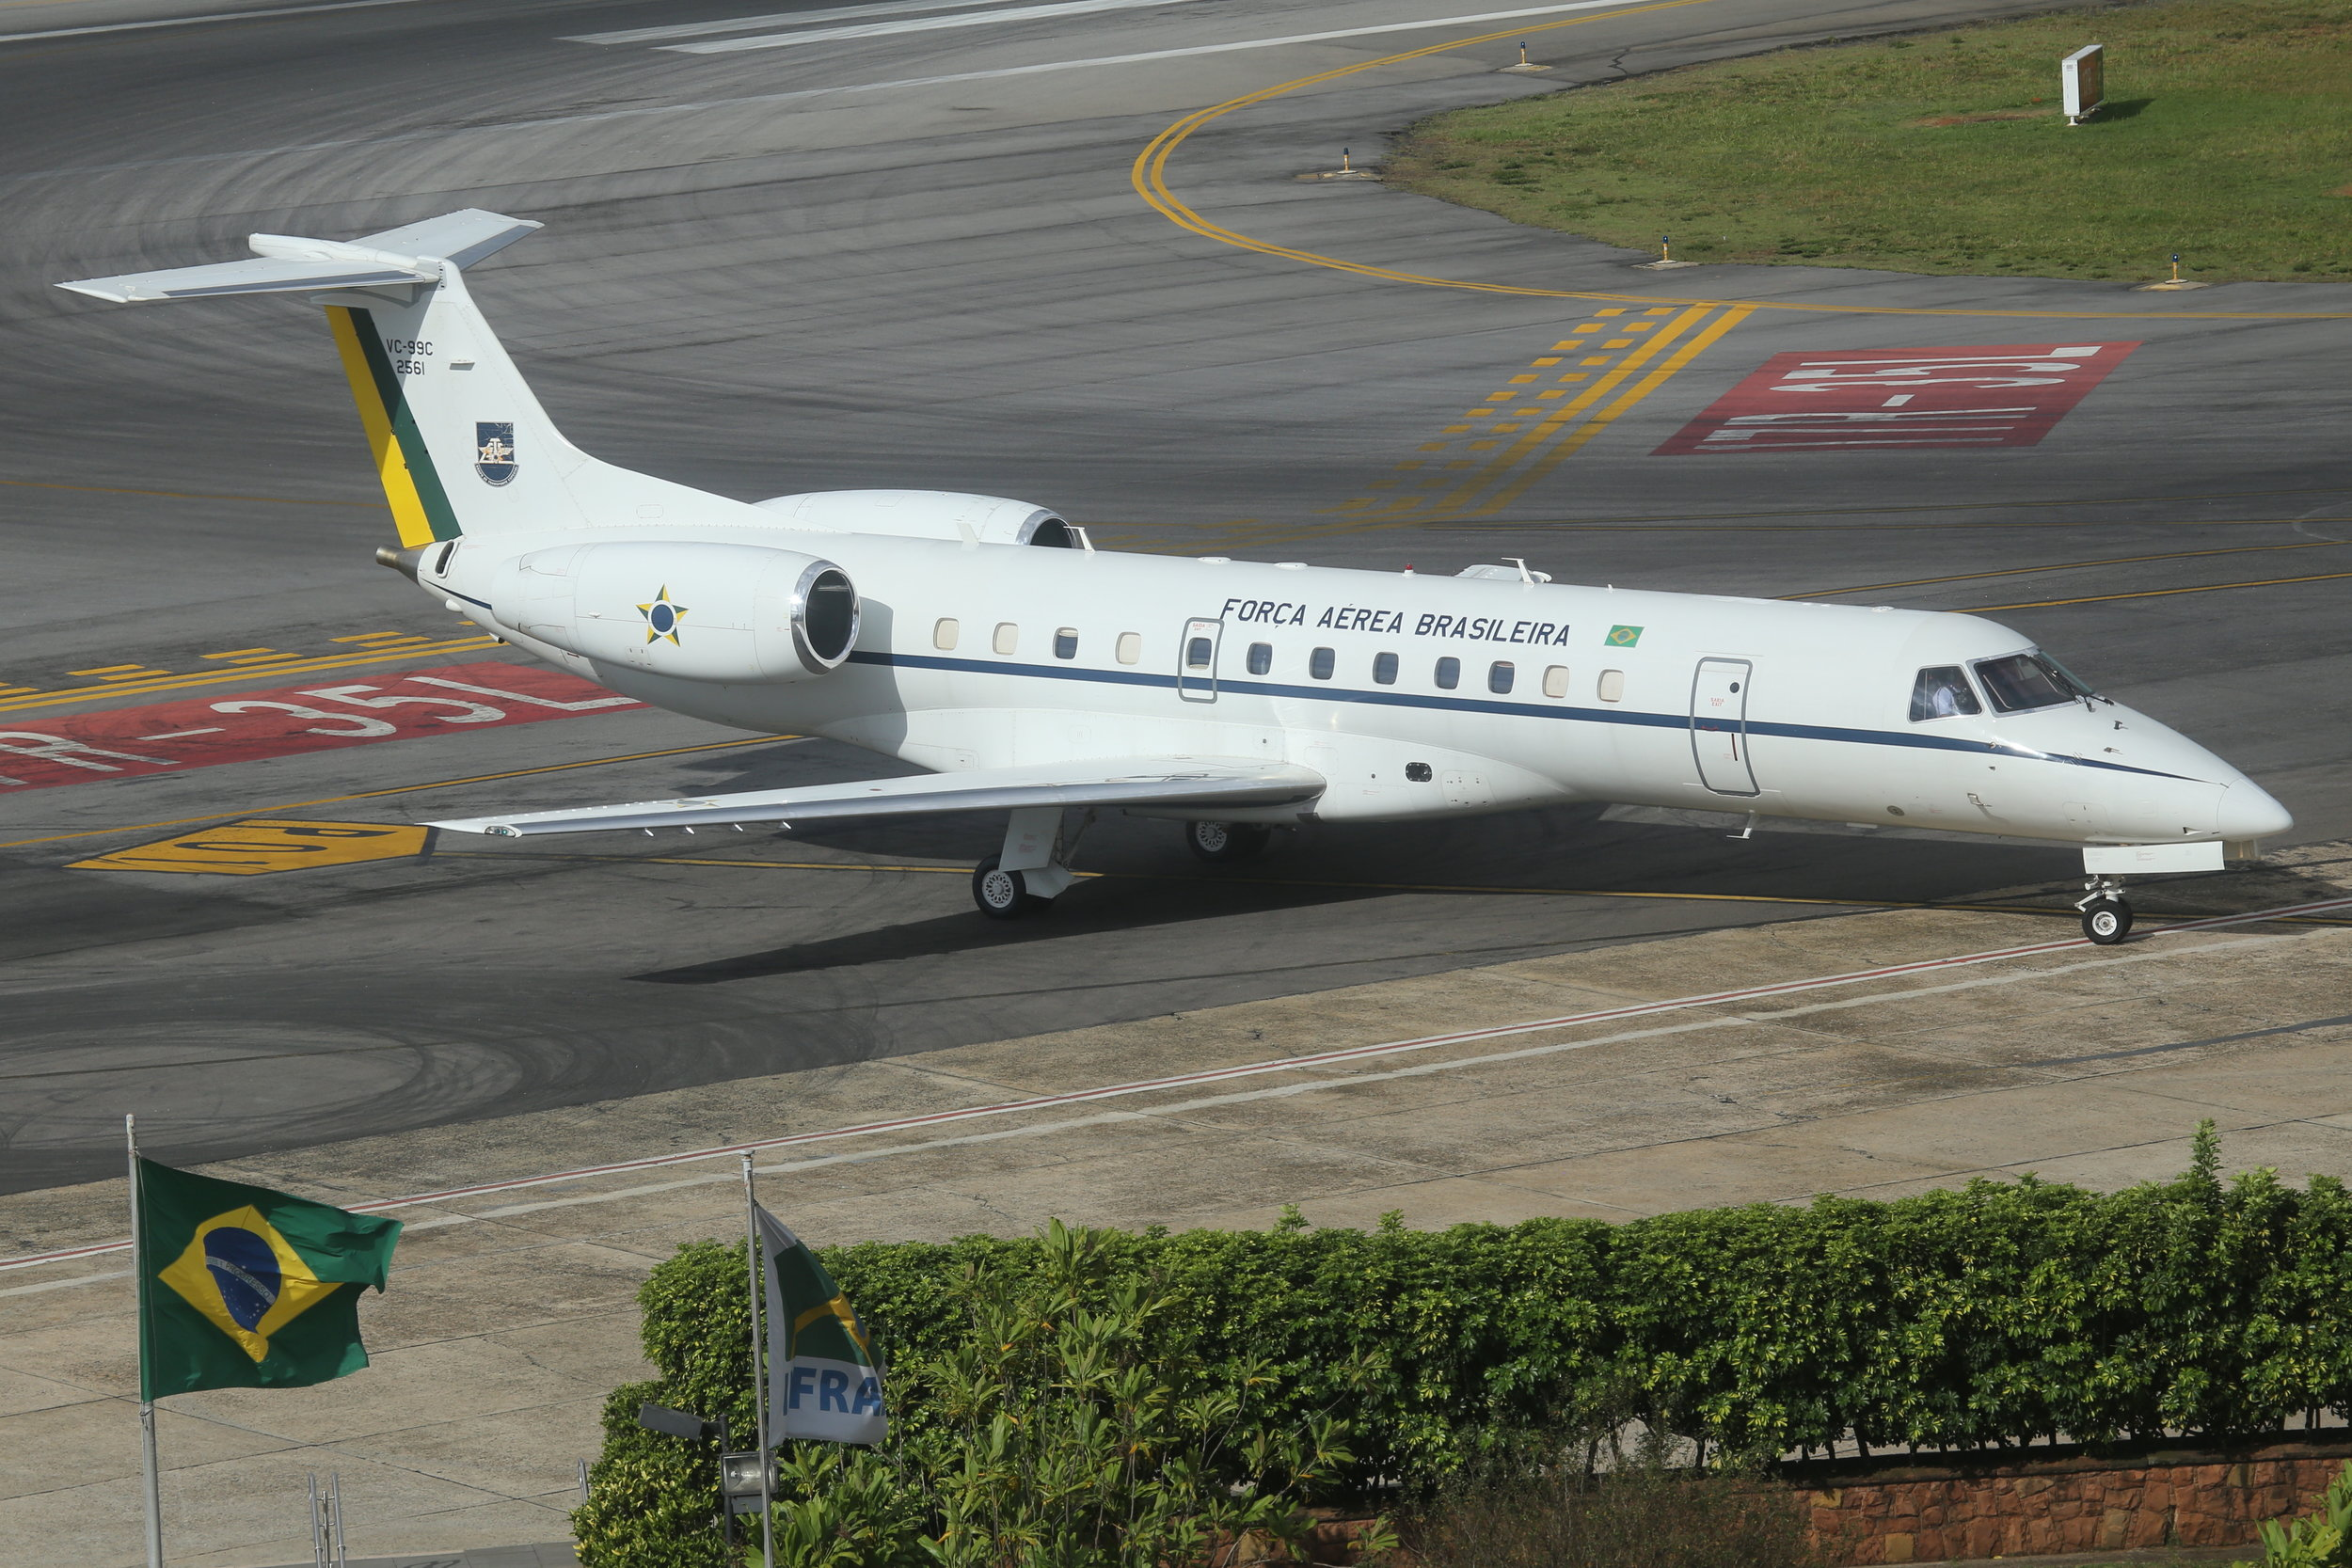 VC-99C FAB 2561 Brasil Air Force Embraer 135 Legacy taken from the Slaveiro Slim hotel at Sao Paulo Congonhas Airport 28th April 2019 by John Wood